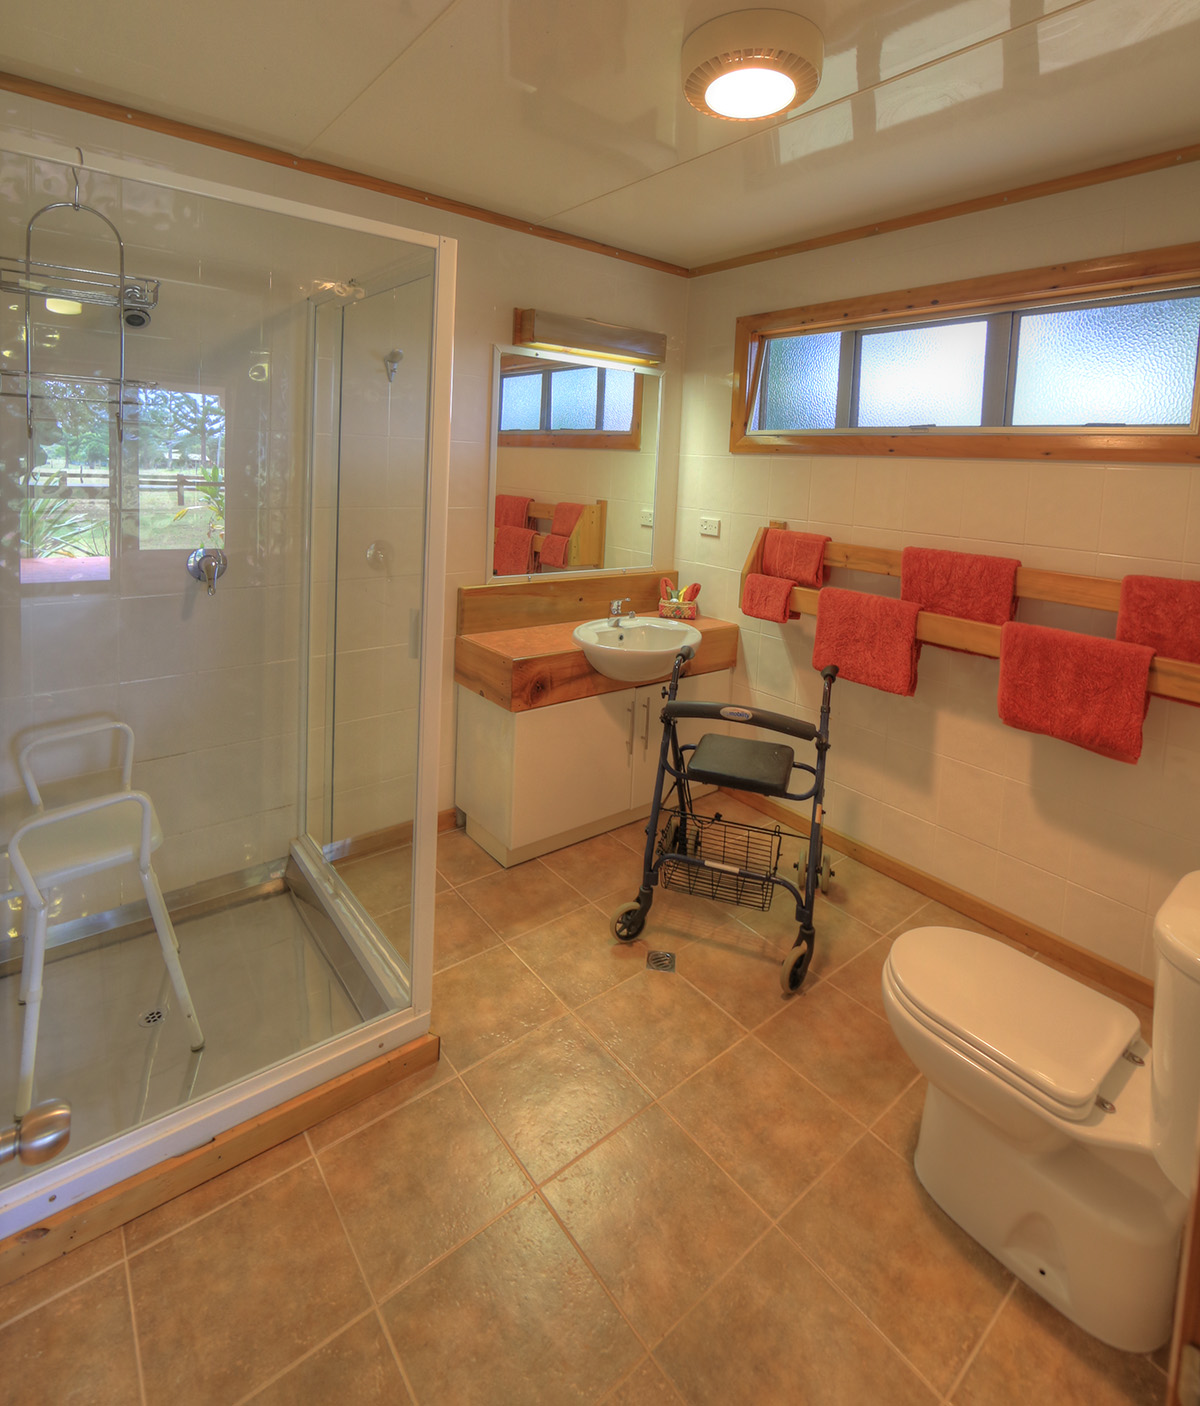 3 Bedroom house bathroom